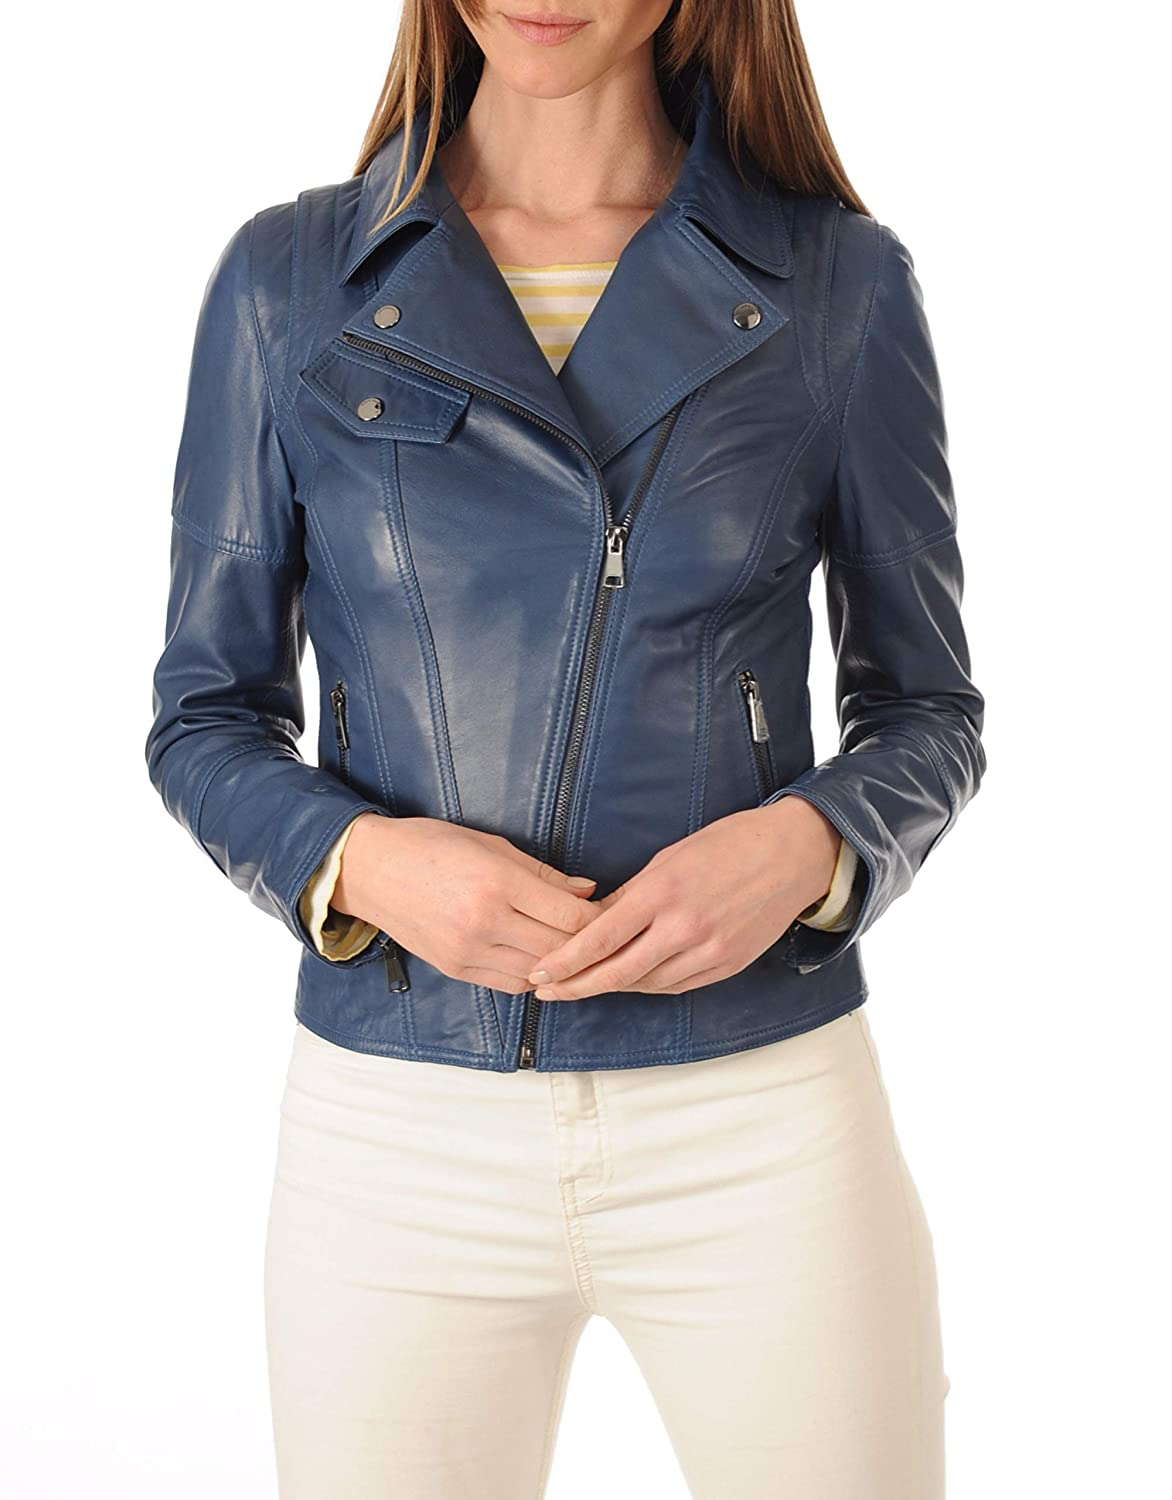 bluees1 DOLBERG CREATIONS Sheepskin Leather Jacket for Womens